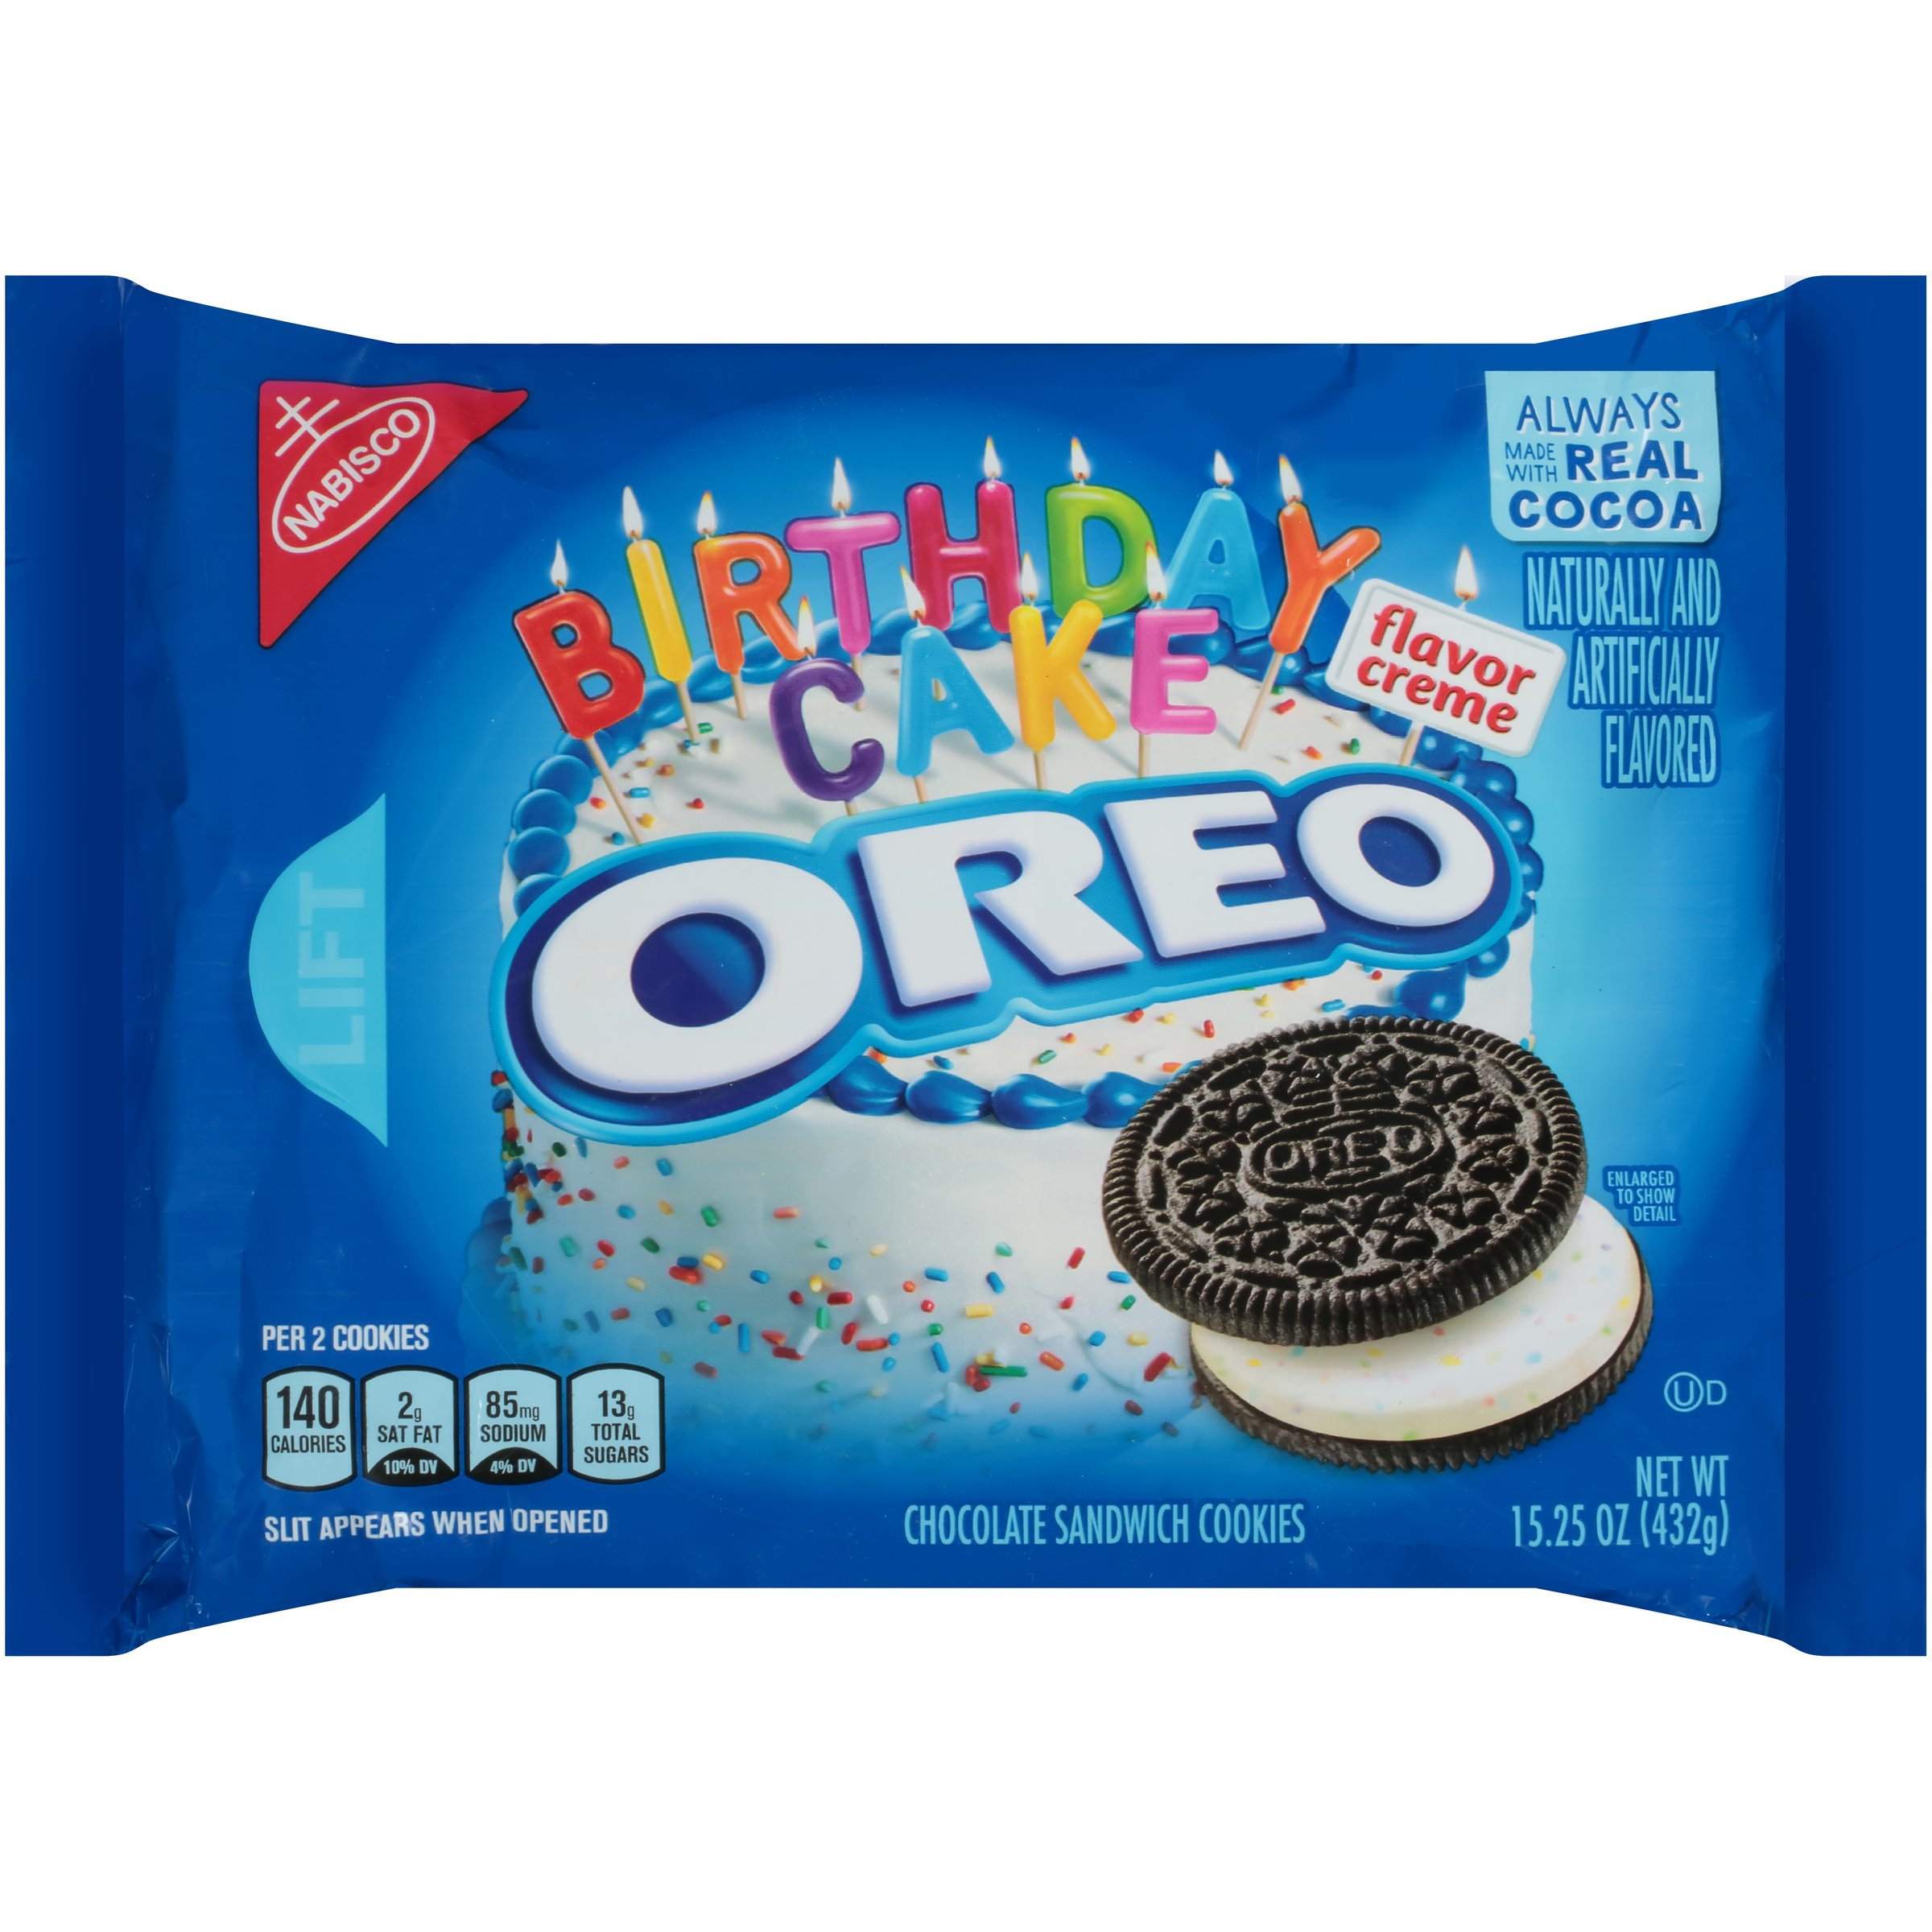 Swell Nabisco Oreo Birthday Cake Flavor Creme Chocolate Sandwich Cookies Funny Birthday Cards Online Fluifree Goldxyz